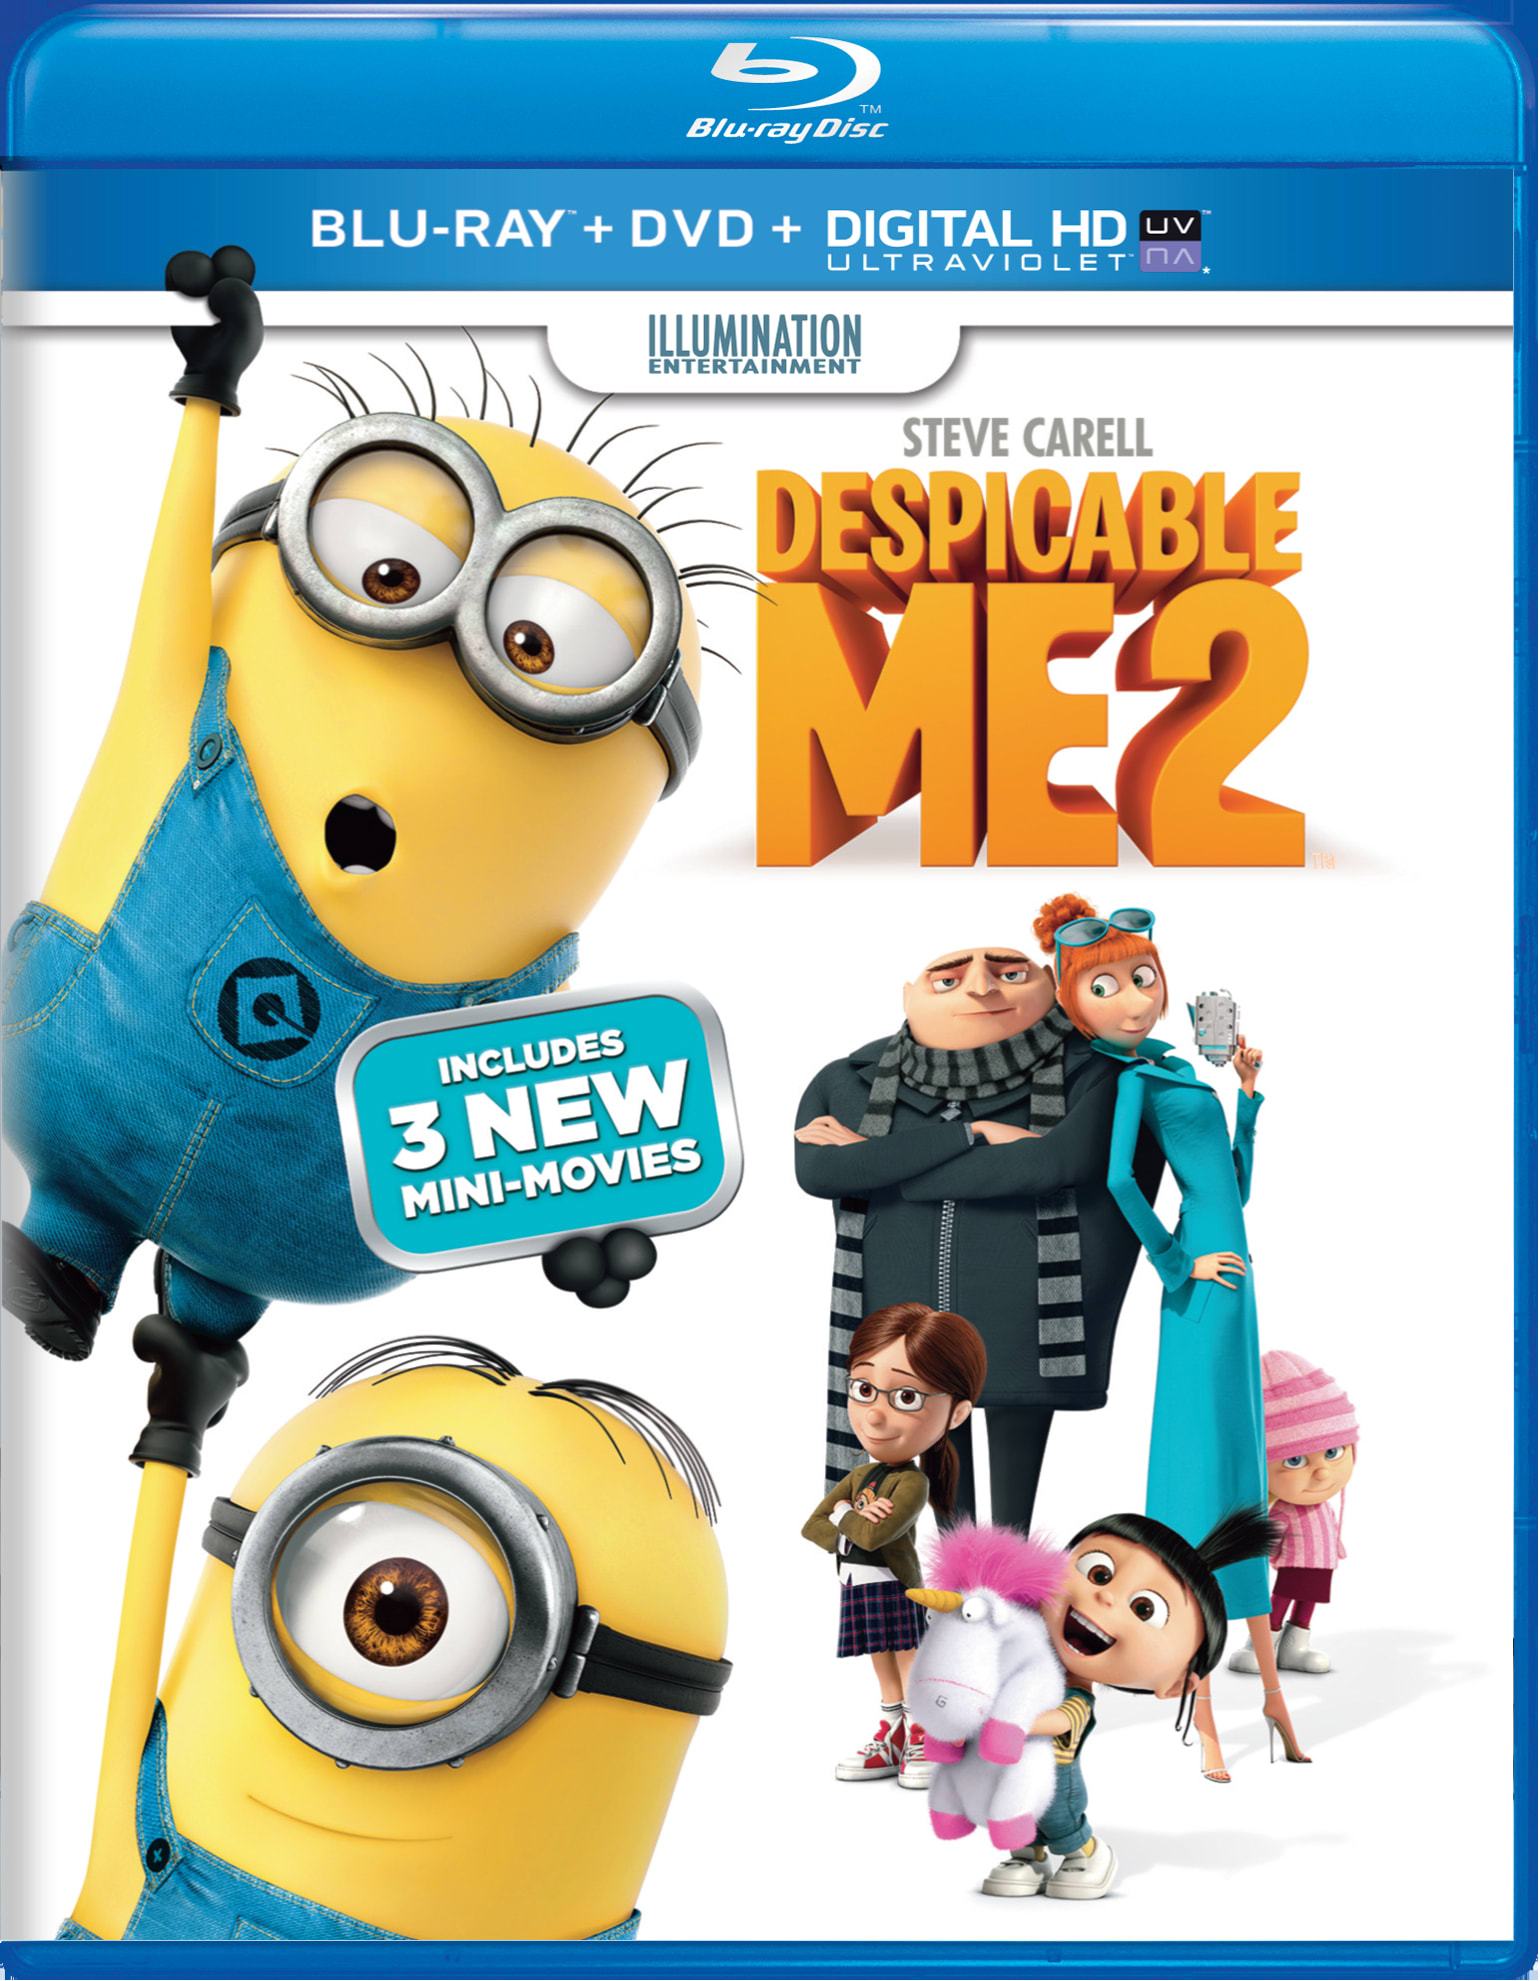 Despicable Me 2 (DVD + Digital) [Blu-ray]